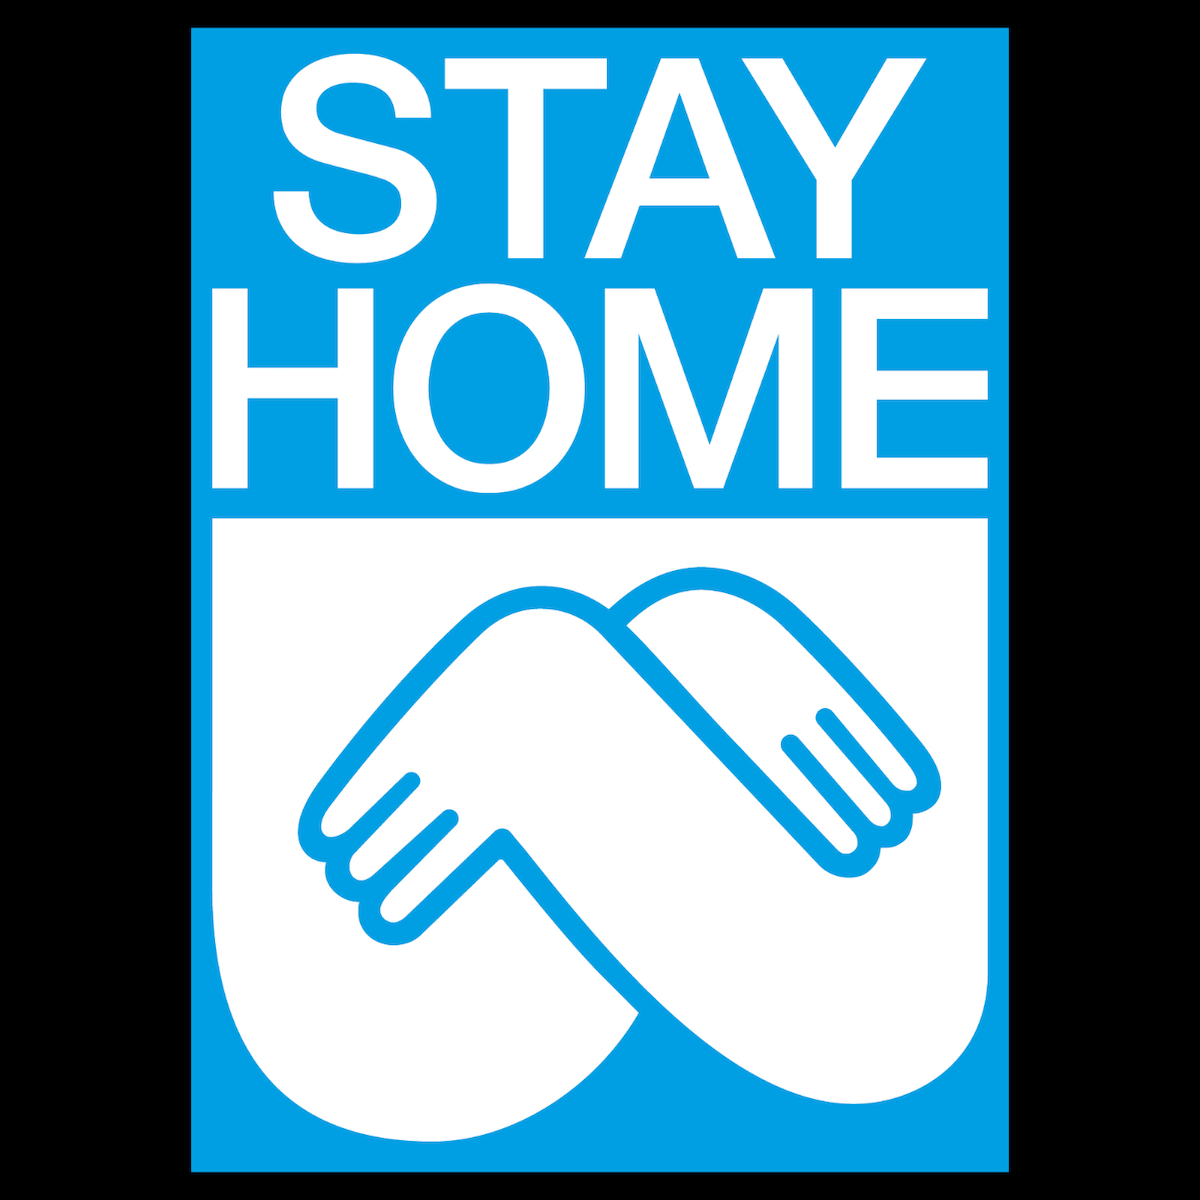 Stay Home poster, part of Poster Jam's challenge with Helvetica & Typefesse Pleine showing Filippos' sharp visual language